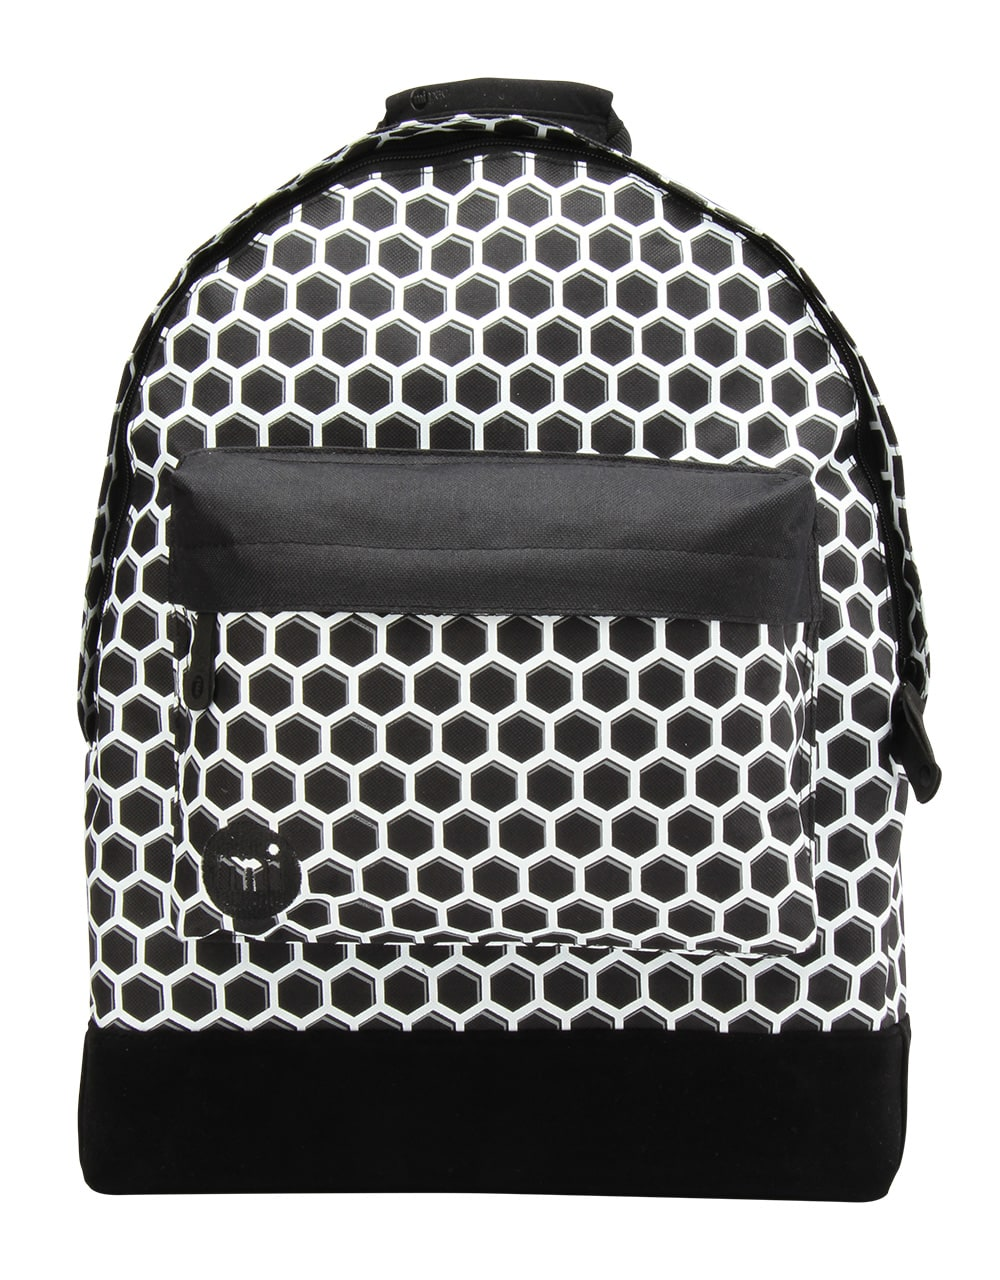 MiPac Honeycomb Backpack  BlackWhite